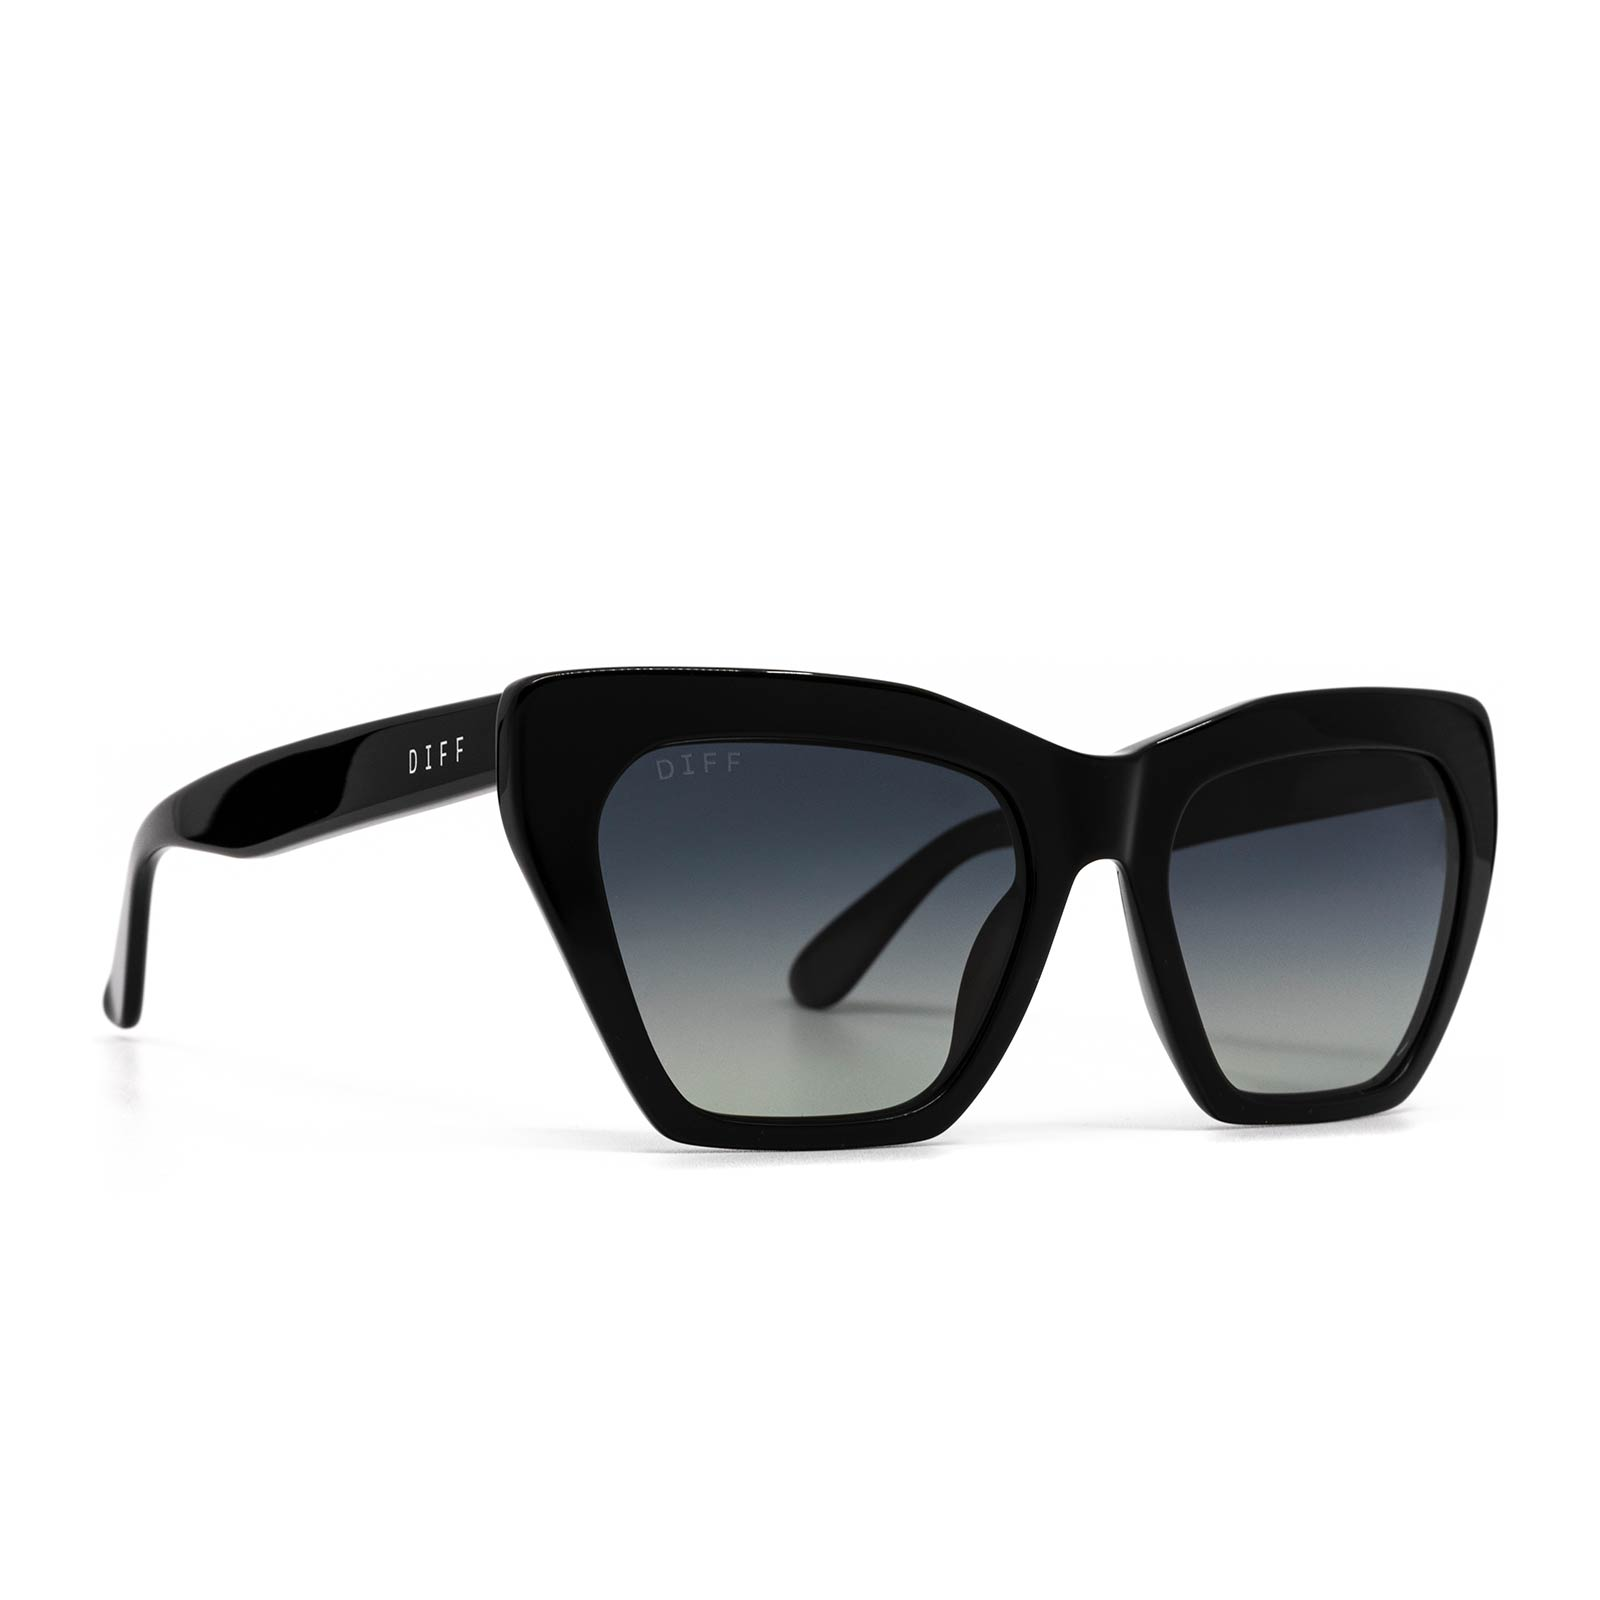 Wren sunglasses with black frame and grey gradient polarized lens- angle view